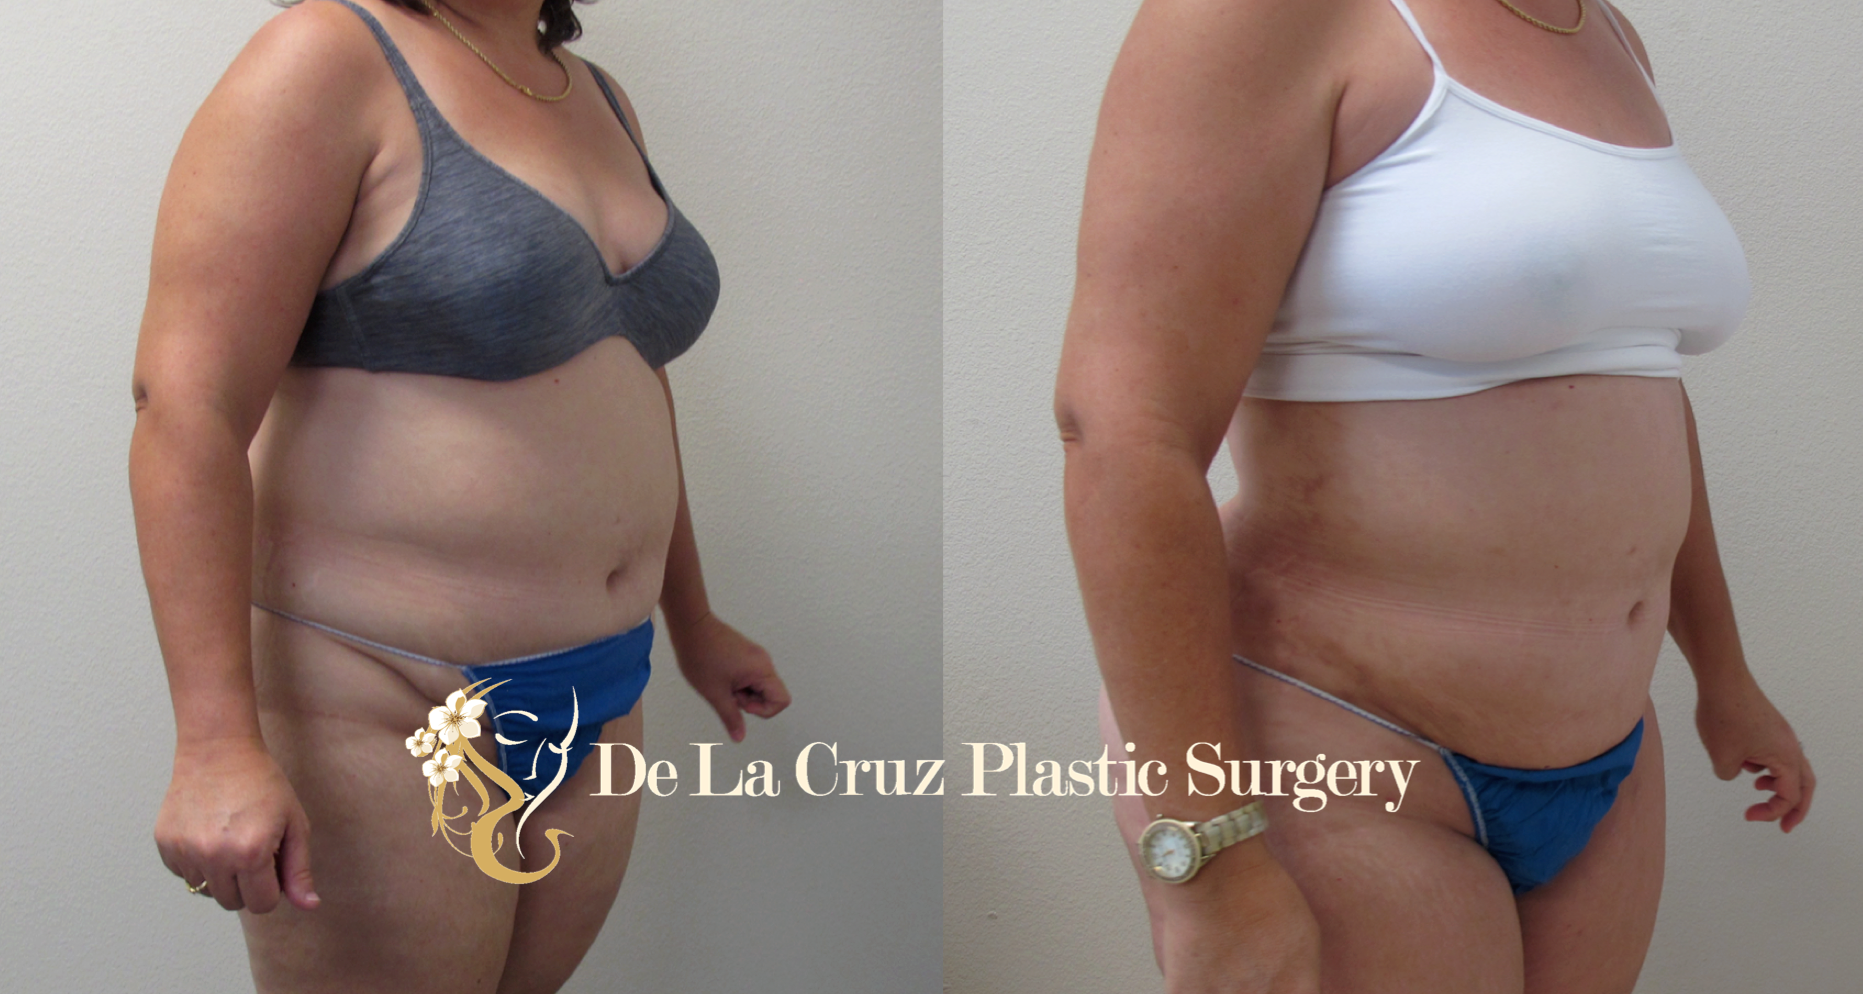 VASER Liposuction (Before and After 6 months of Surgery) performed by Dr. Emmanuel De La Cruz